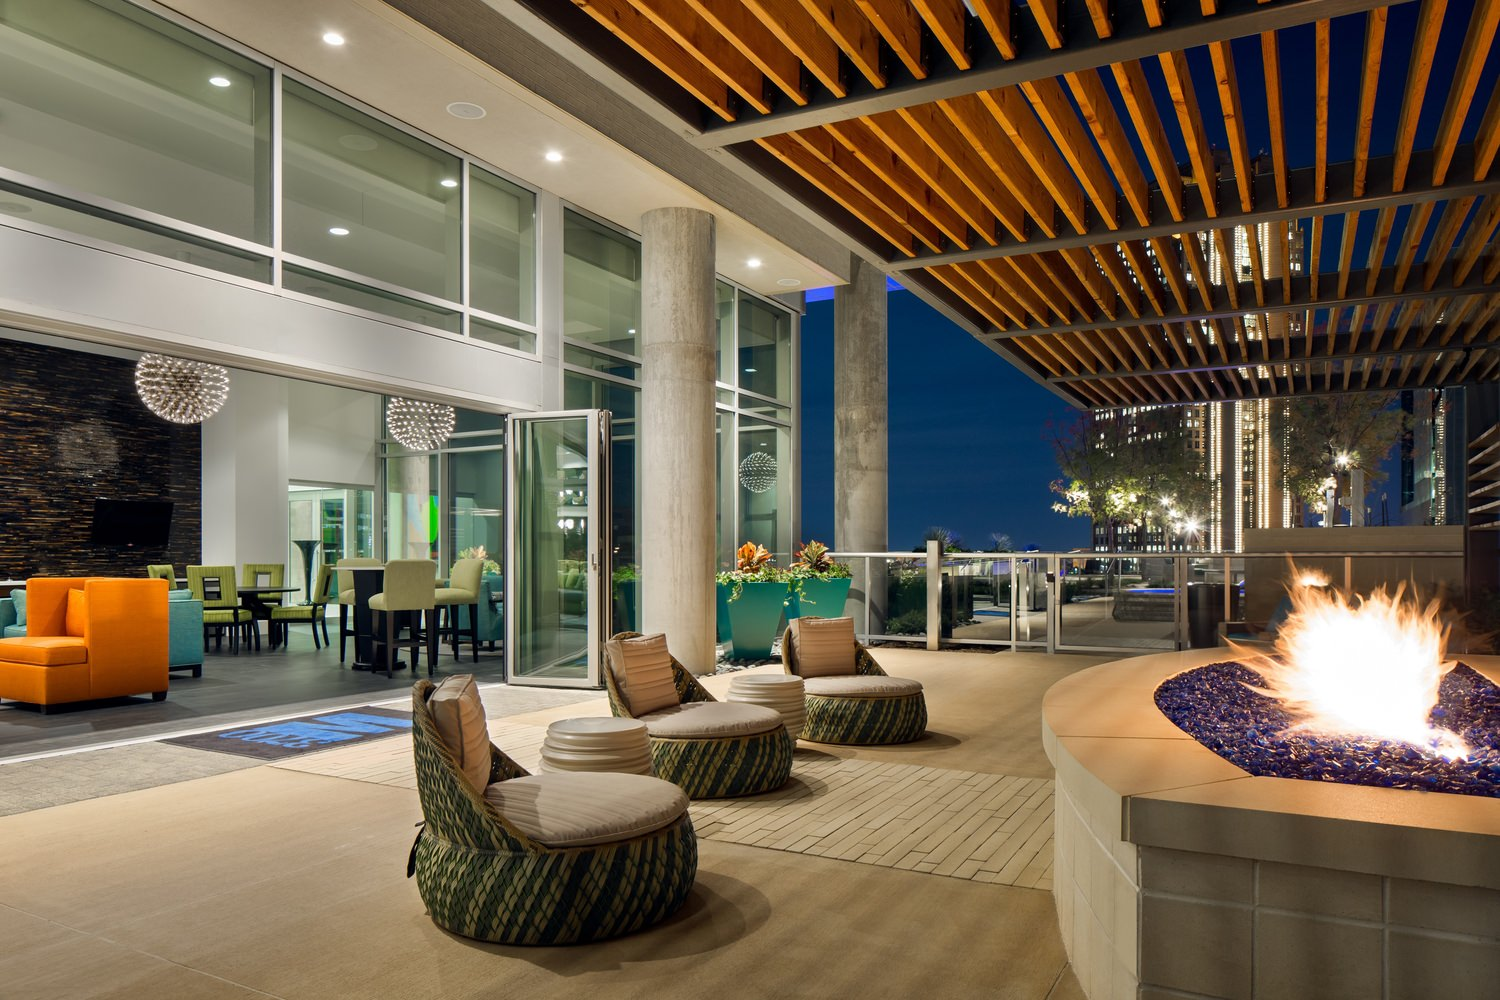 A large lounge area that is full of outdoor furniture next to a fire pit under a gazebo.